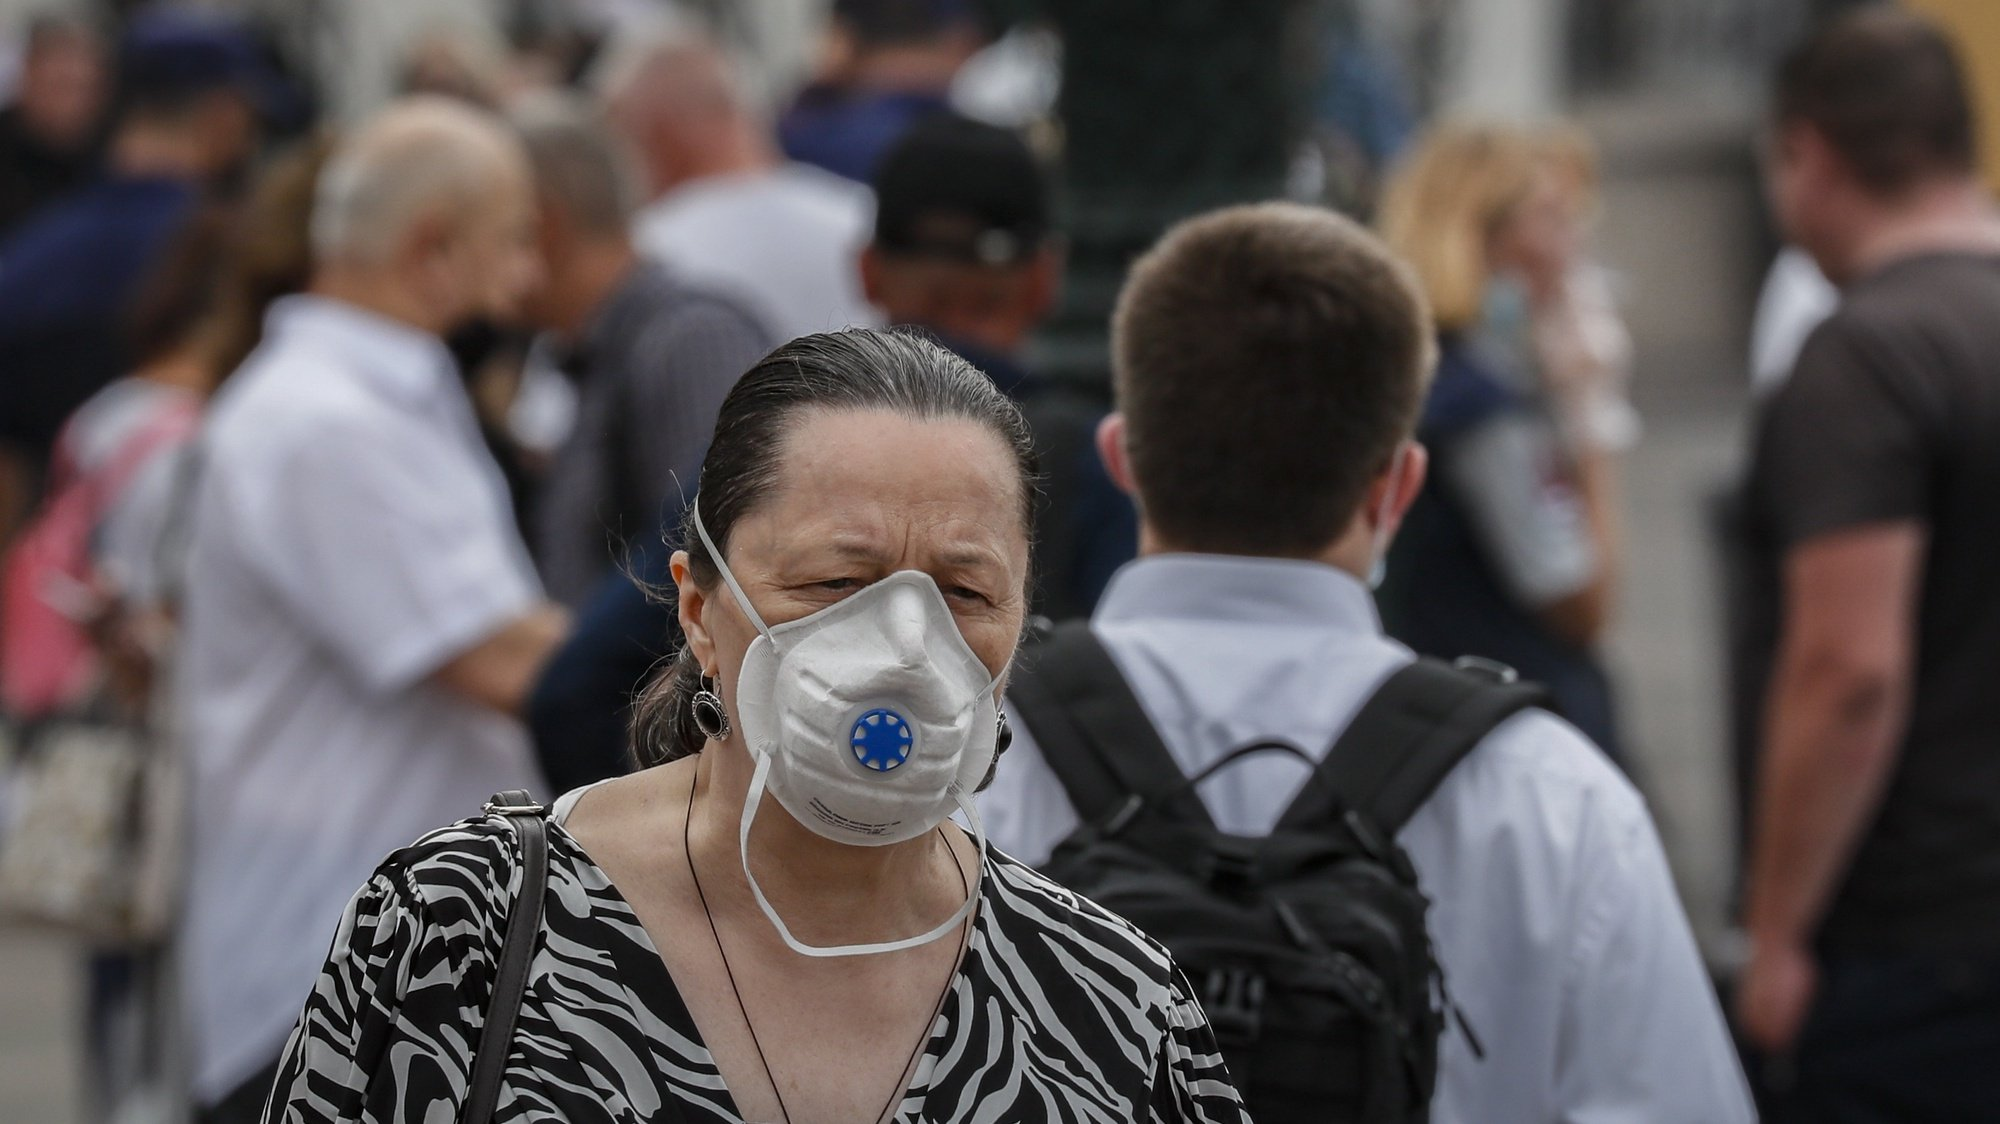 epa09380264 Russian woman wearing a protective face mask on the street in Moscow, Russia 30 July 2021. Moscow Mayor Sergei Sobyanin has canceled the obligation to wear gloves in public places. At the same time, wearing masks remain mandatory during Covid-19 pandemic.  EPA/YURI KOCHETKOV